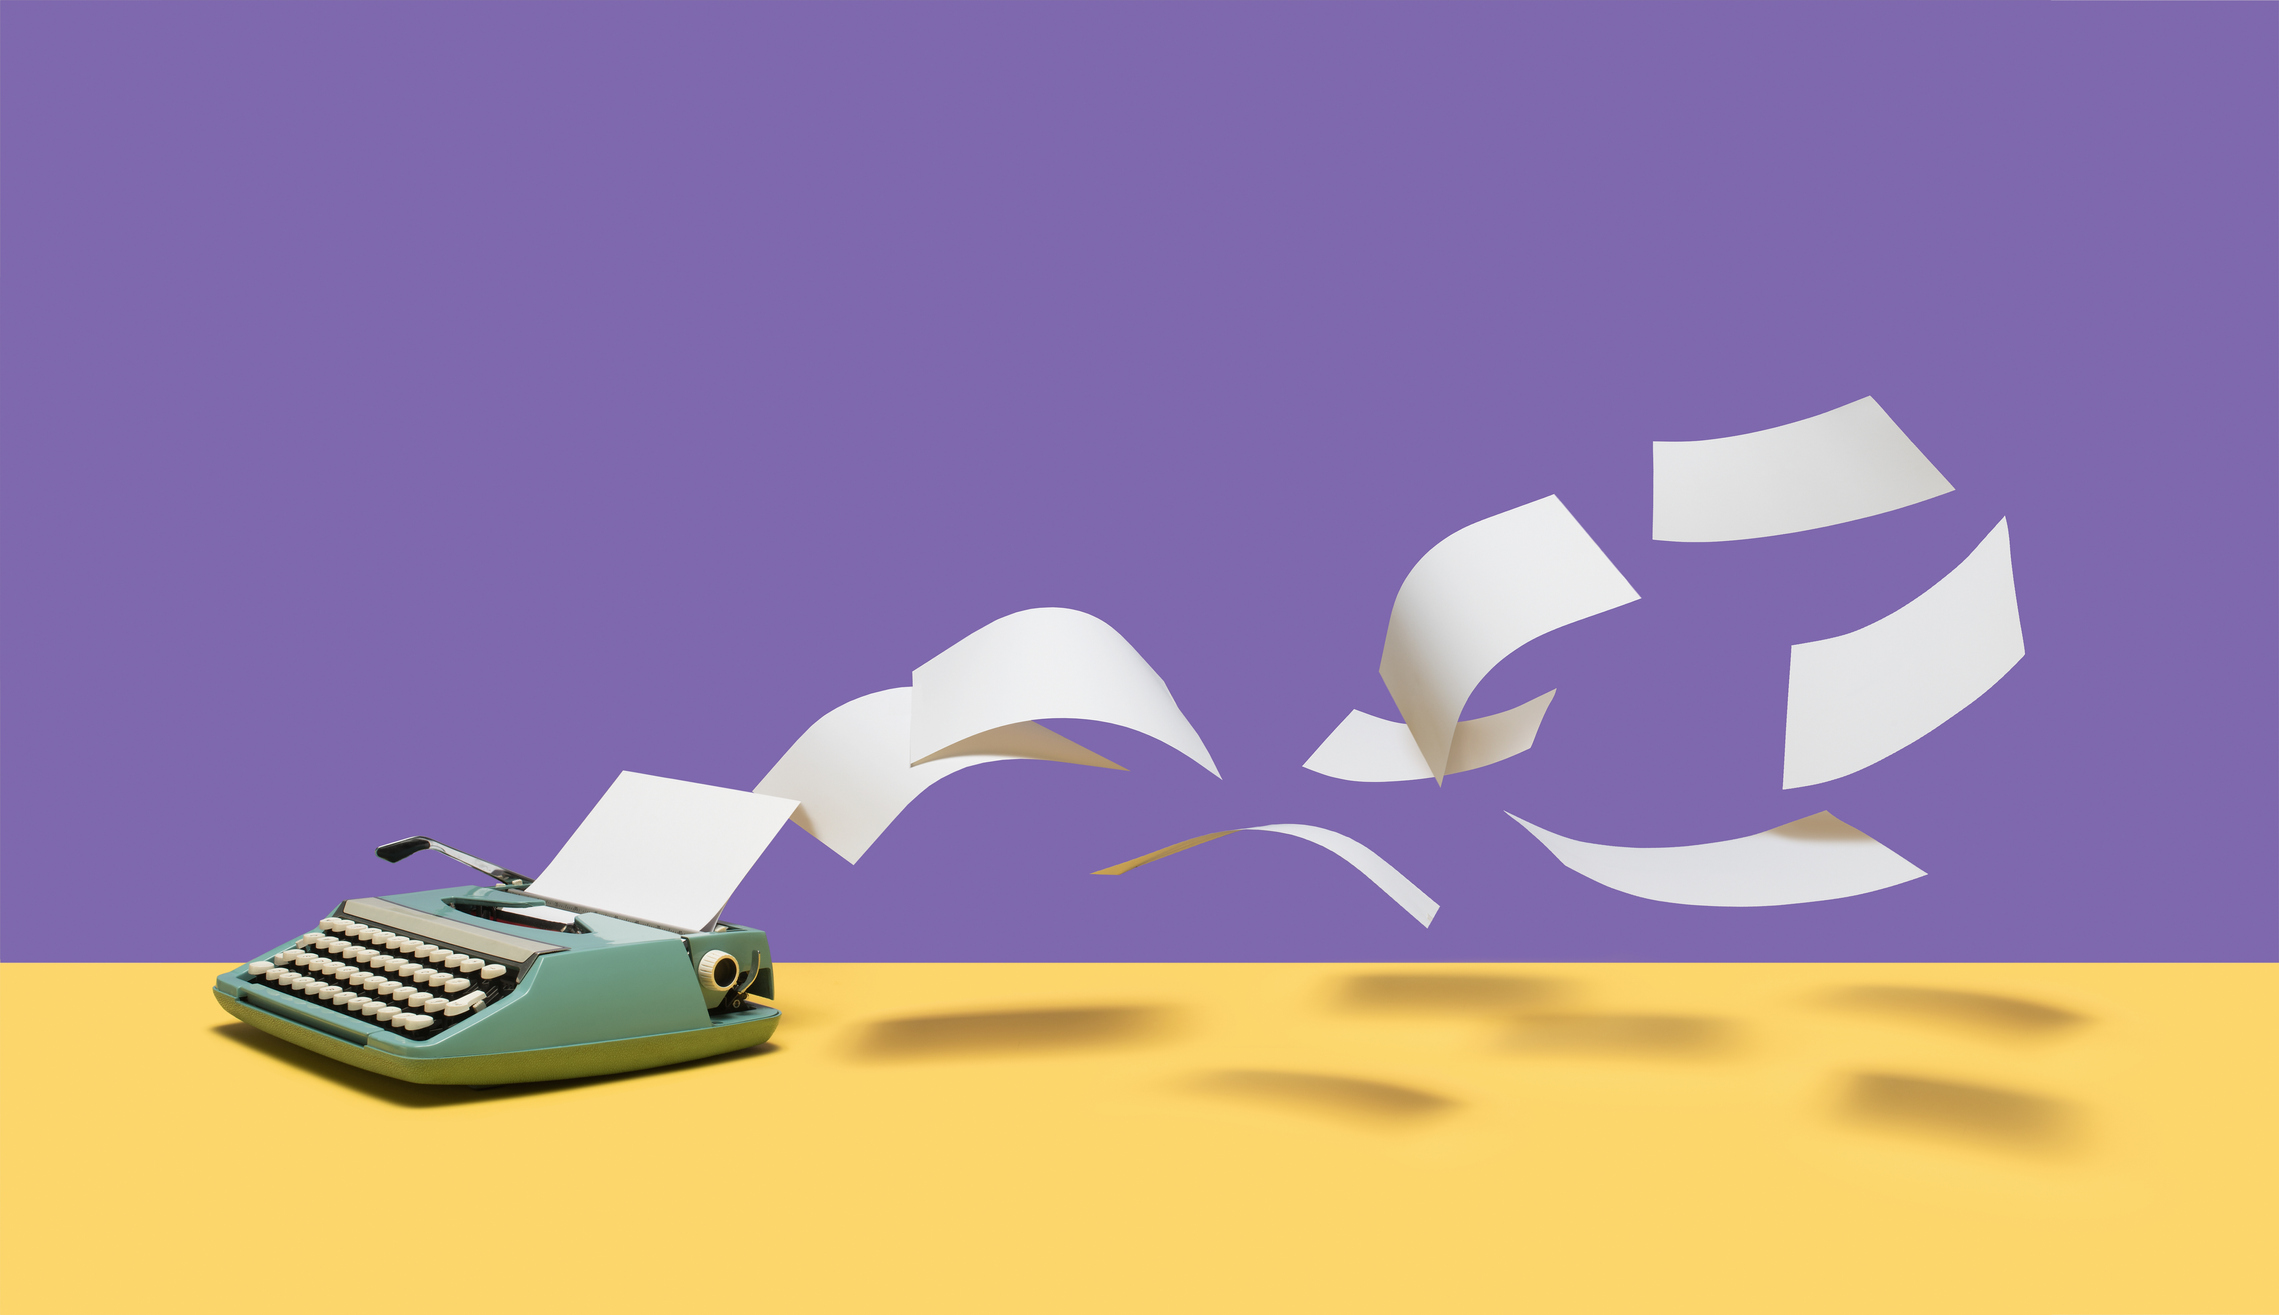 Sheets of blank white paper flying out of vintage, manual typewriter on yellow surface, purple background